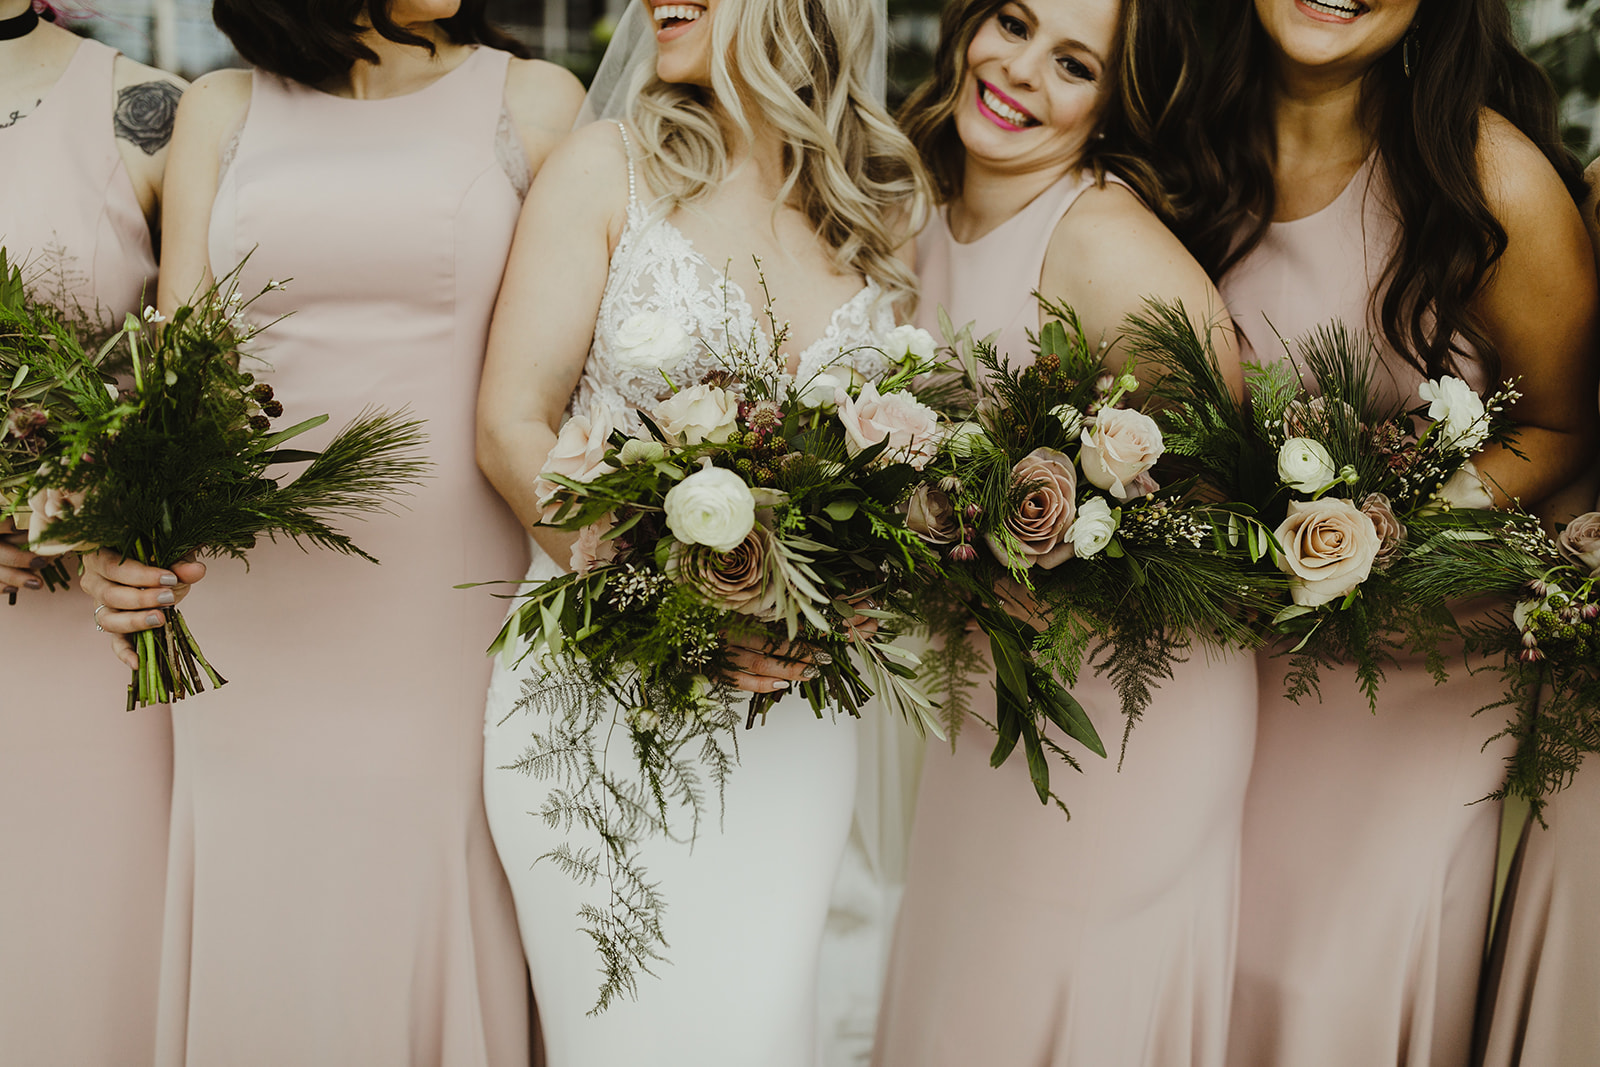 A bride and her bridesmaids smiling with their bouquets